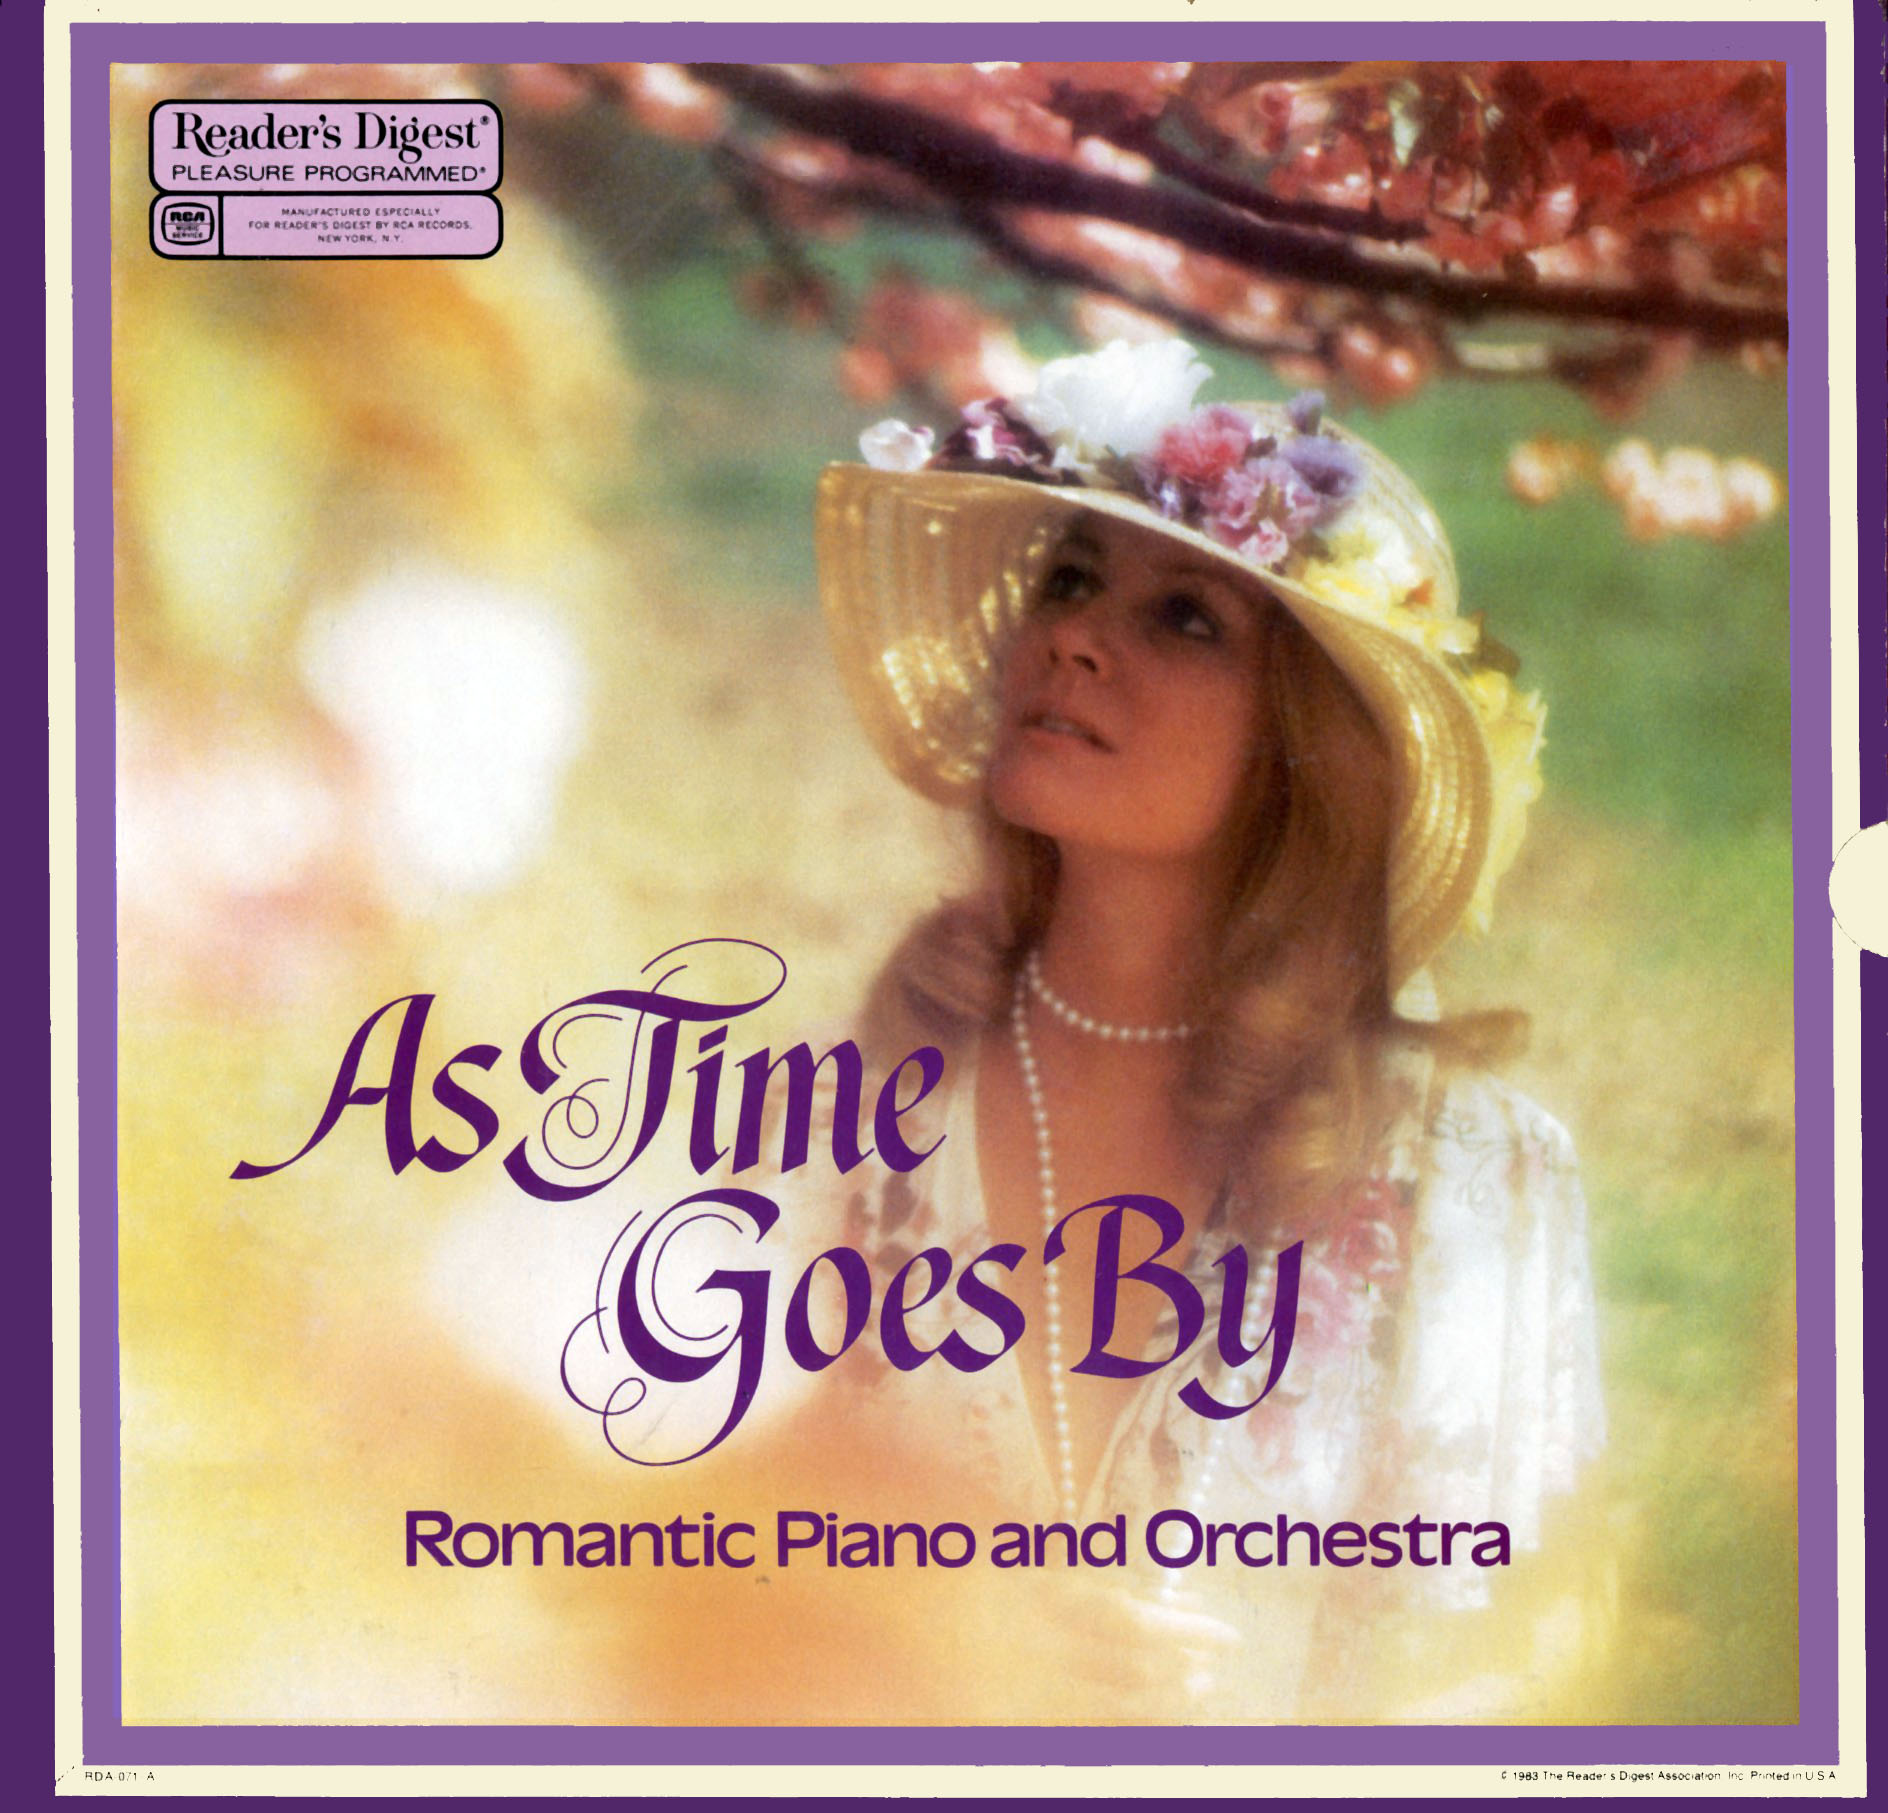 RDA071 - As Time Goes By on CD